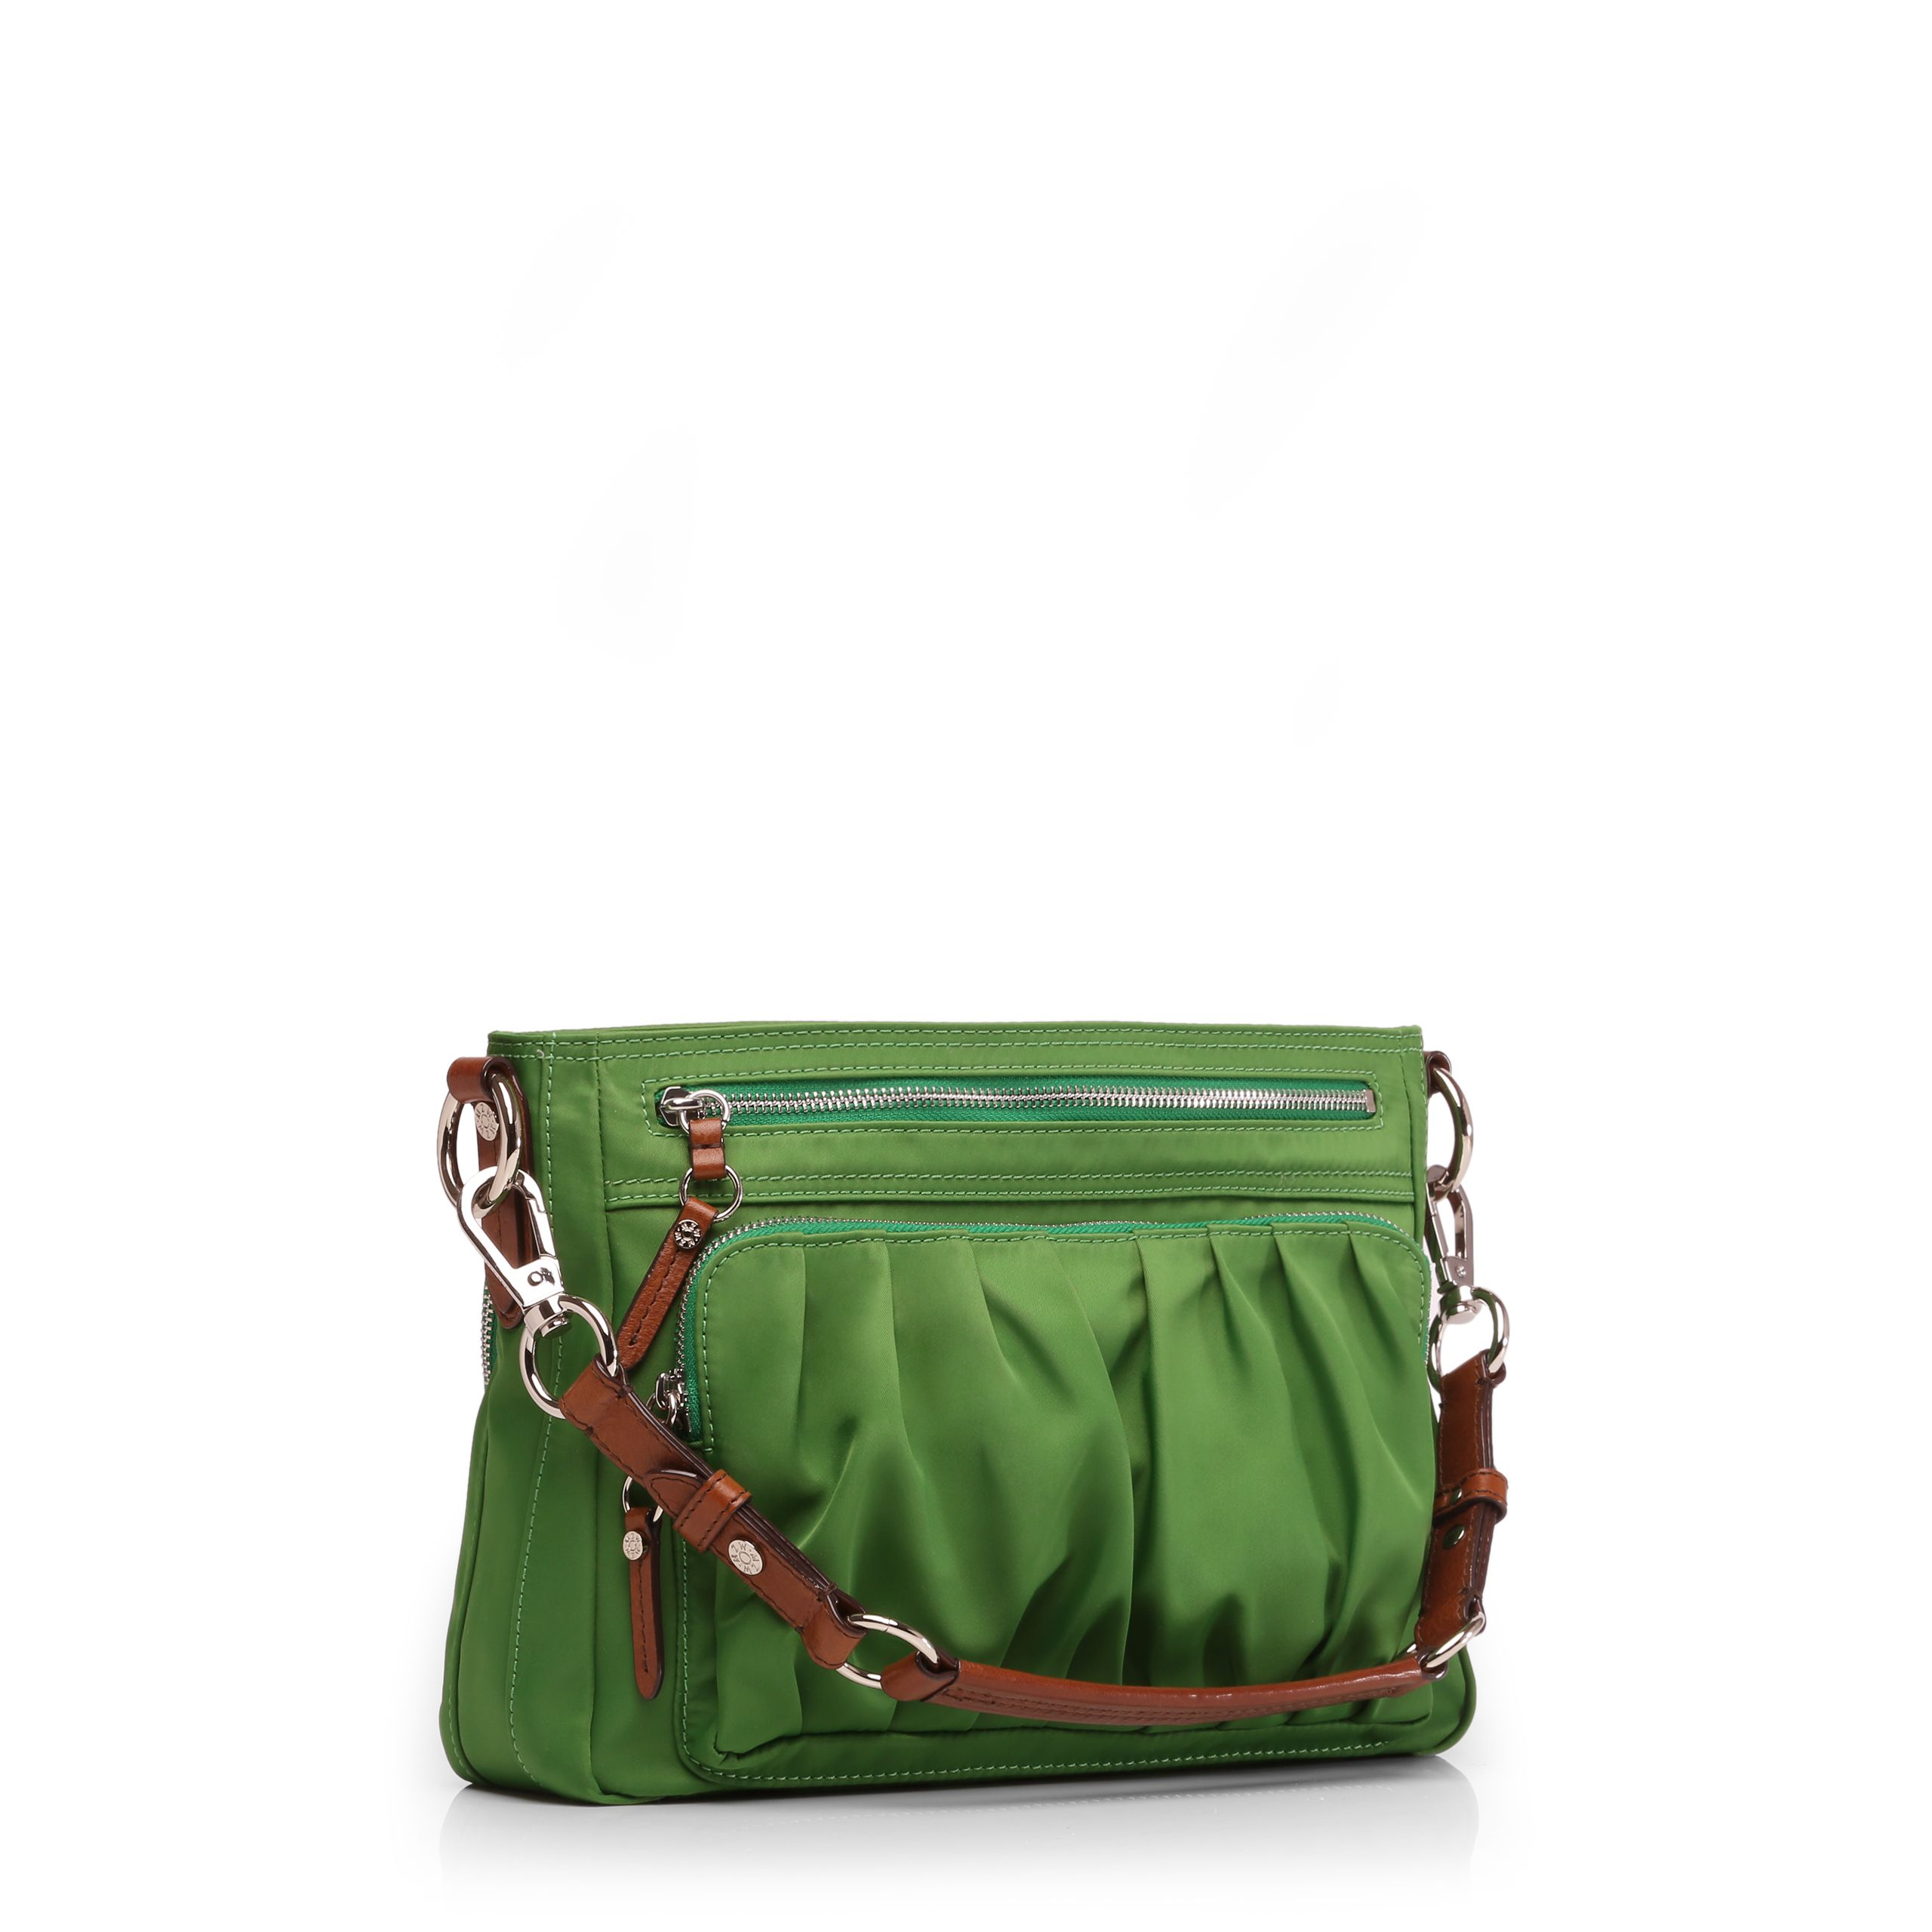 Cricket Bedford Belle Crossbody (10111376) in color Cricket